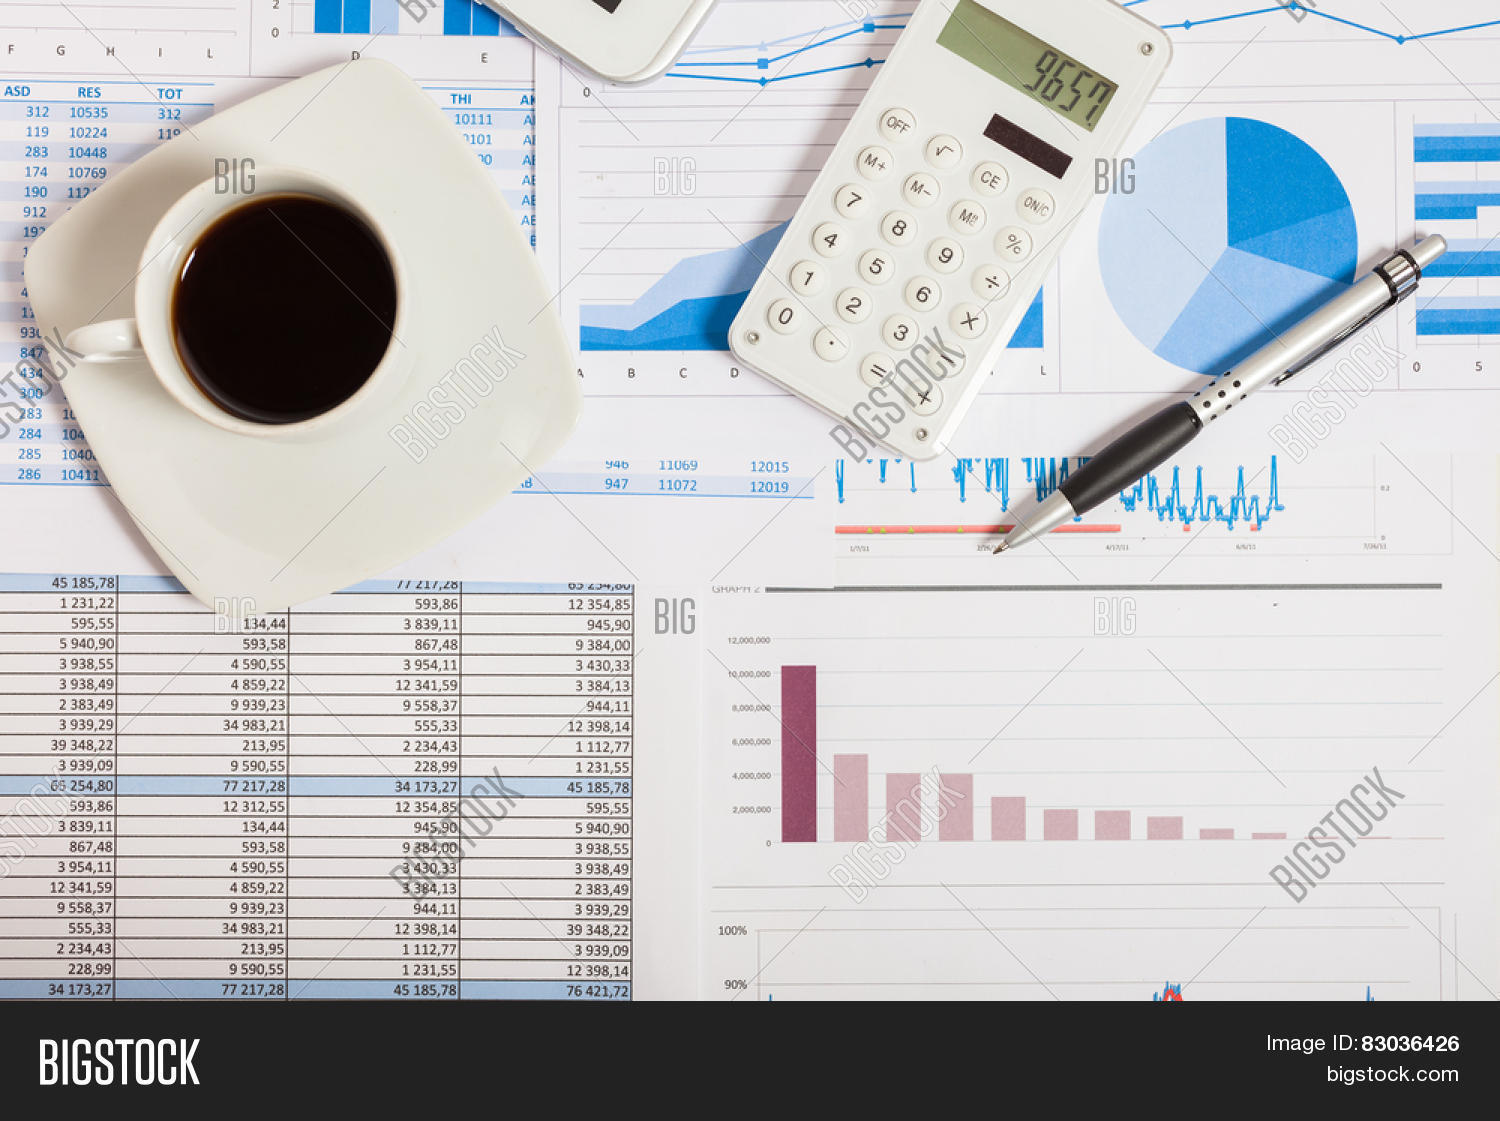 financial data analysis Learning excel data-analysis by: curt frye learn to perform basic data-analysis tasks, from measuring covariance and correlation to testing hypotheses and calculating bayesian probabilities, with these excel tutorials.